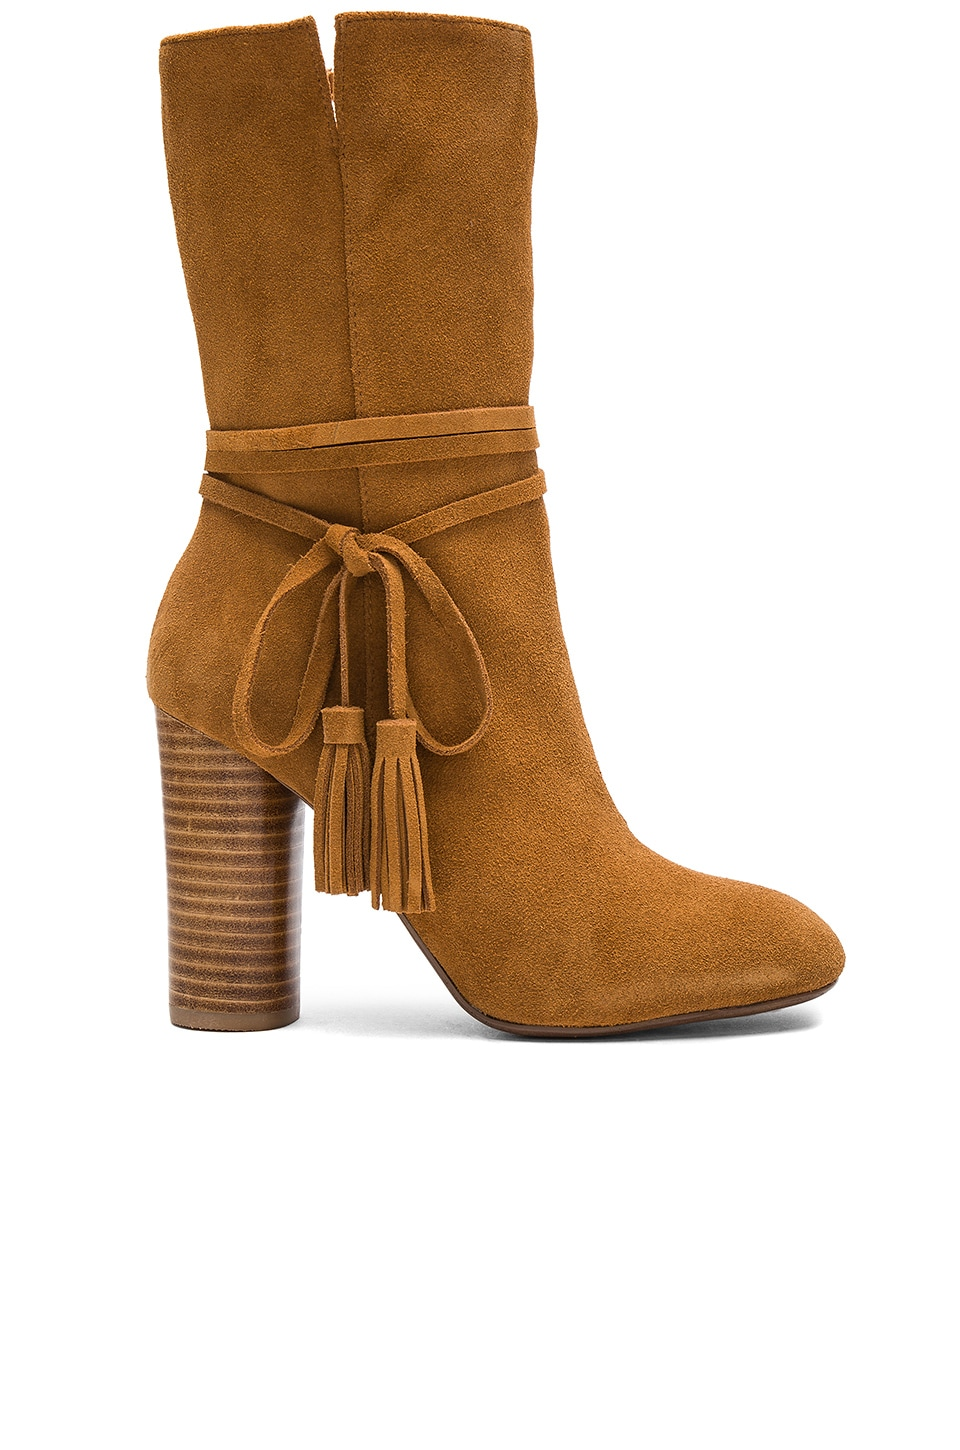 Matiko Miranda Booties in Hemp